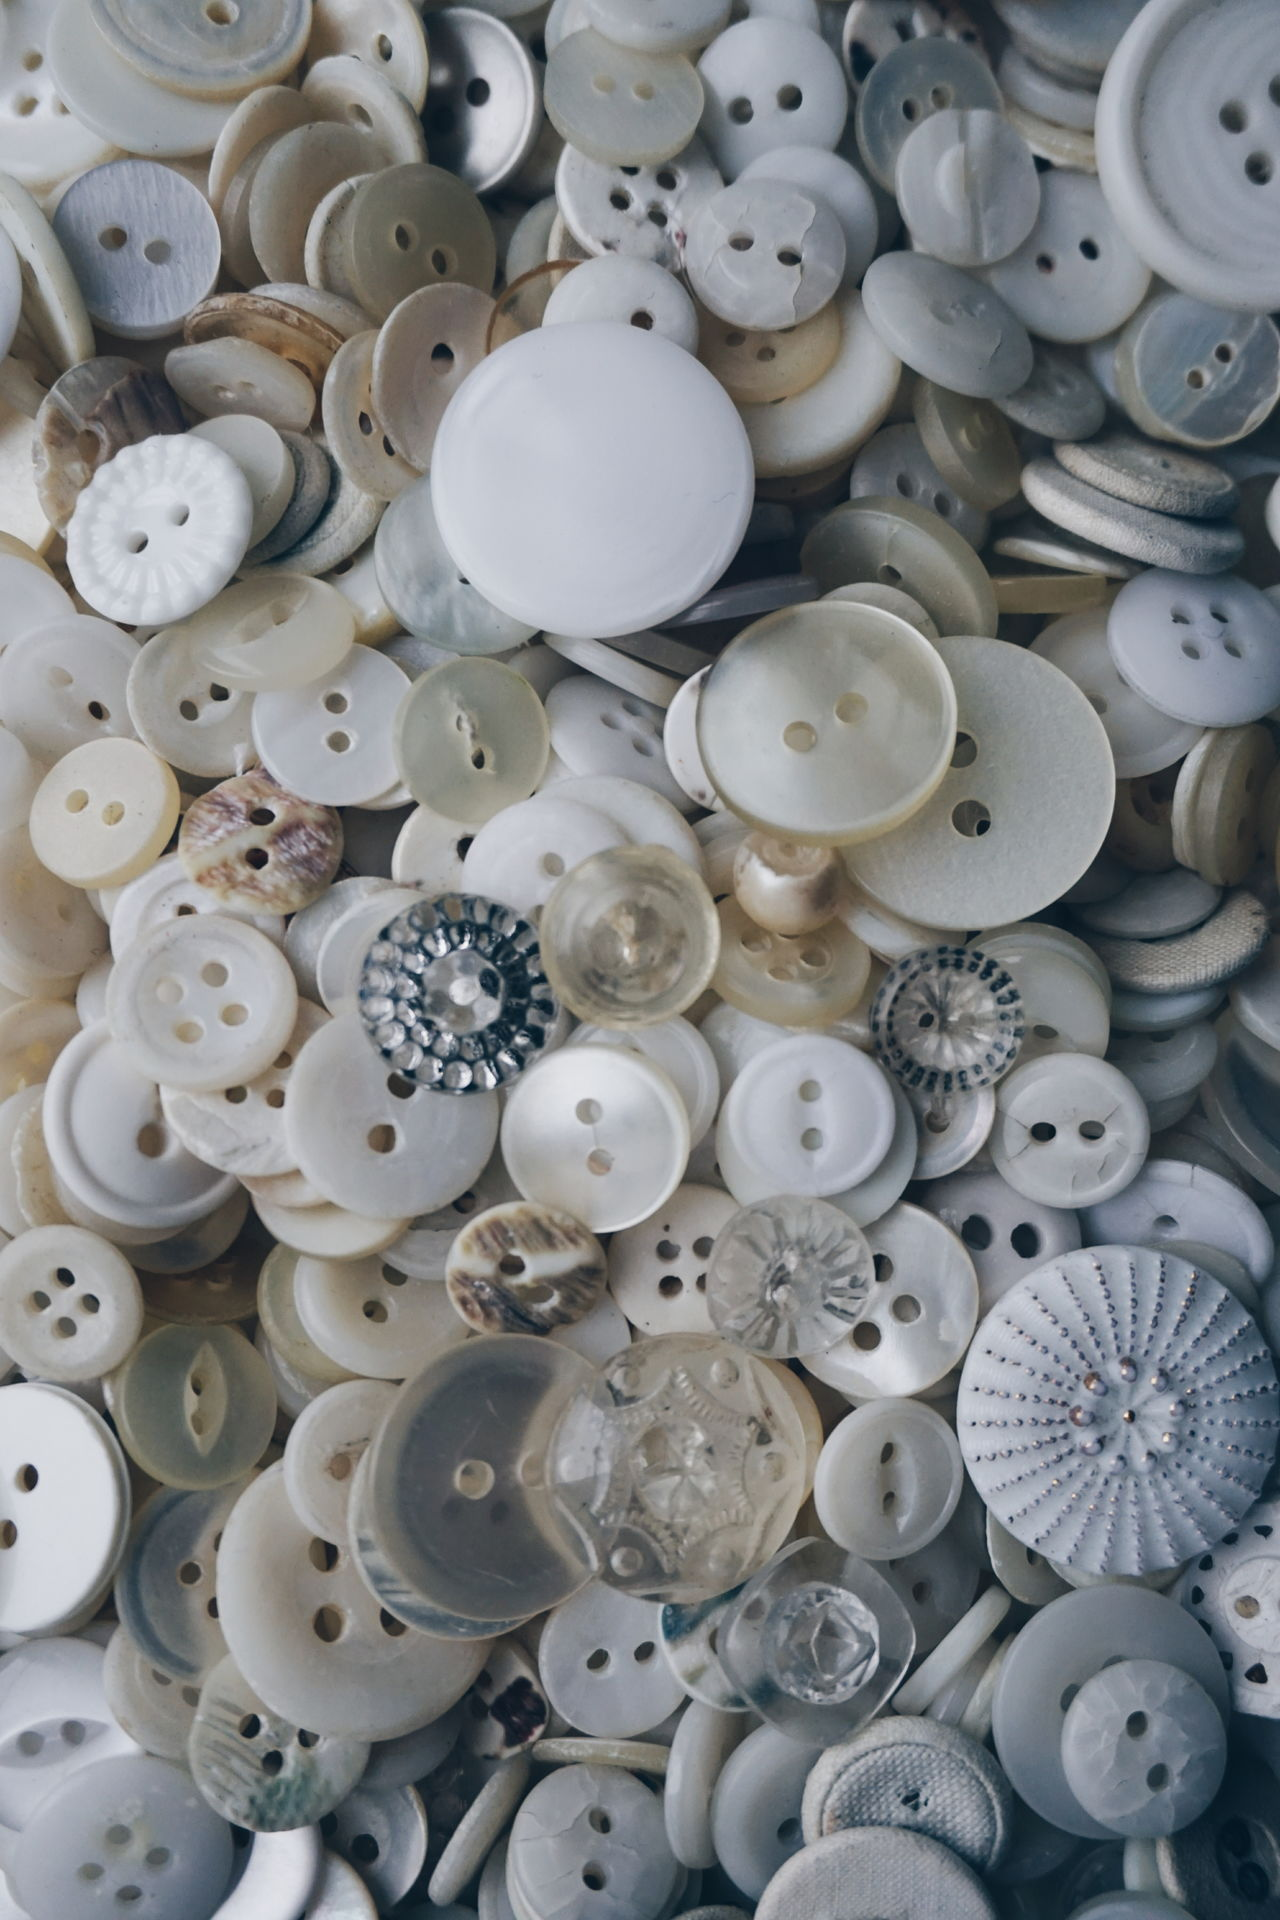 shades of white Backgrounds Full Frame High Angle View Large Group Of Objects Indoors  No People Close-up Day Freshness Shades Of White White Color Shades Buttons Button White Background Texture Indoors  Background Abundance DIY Creativity